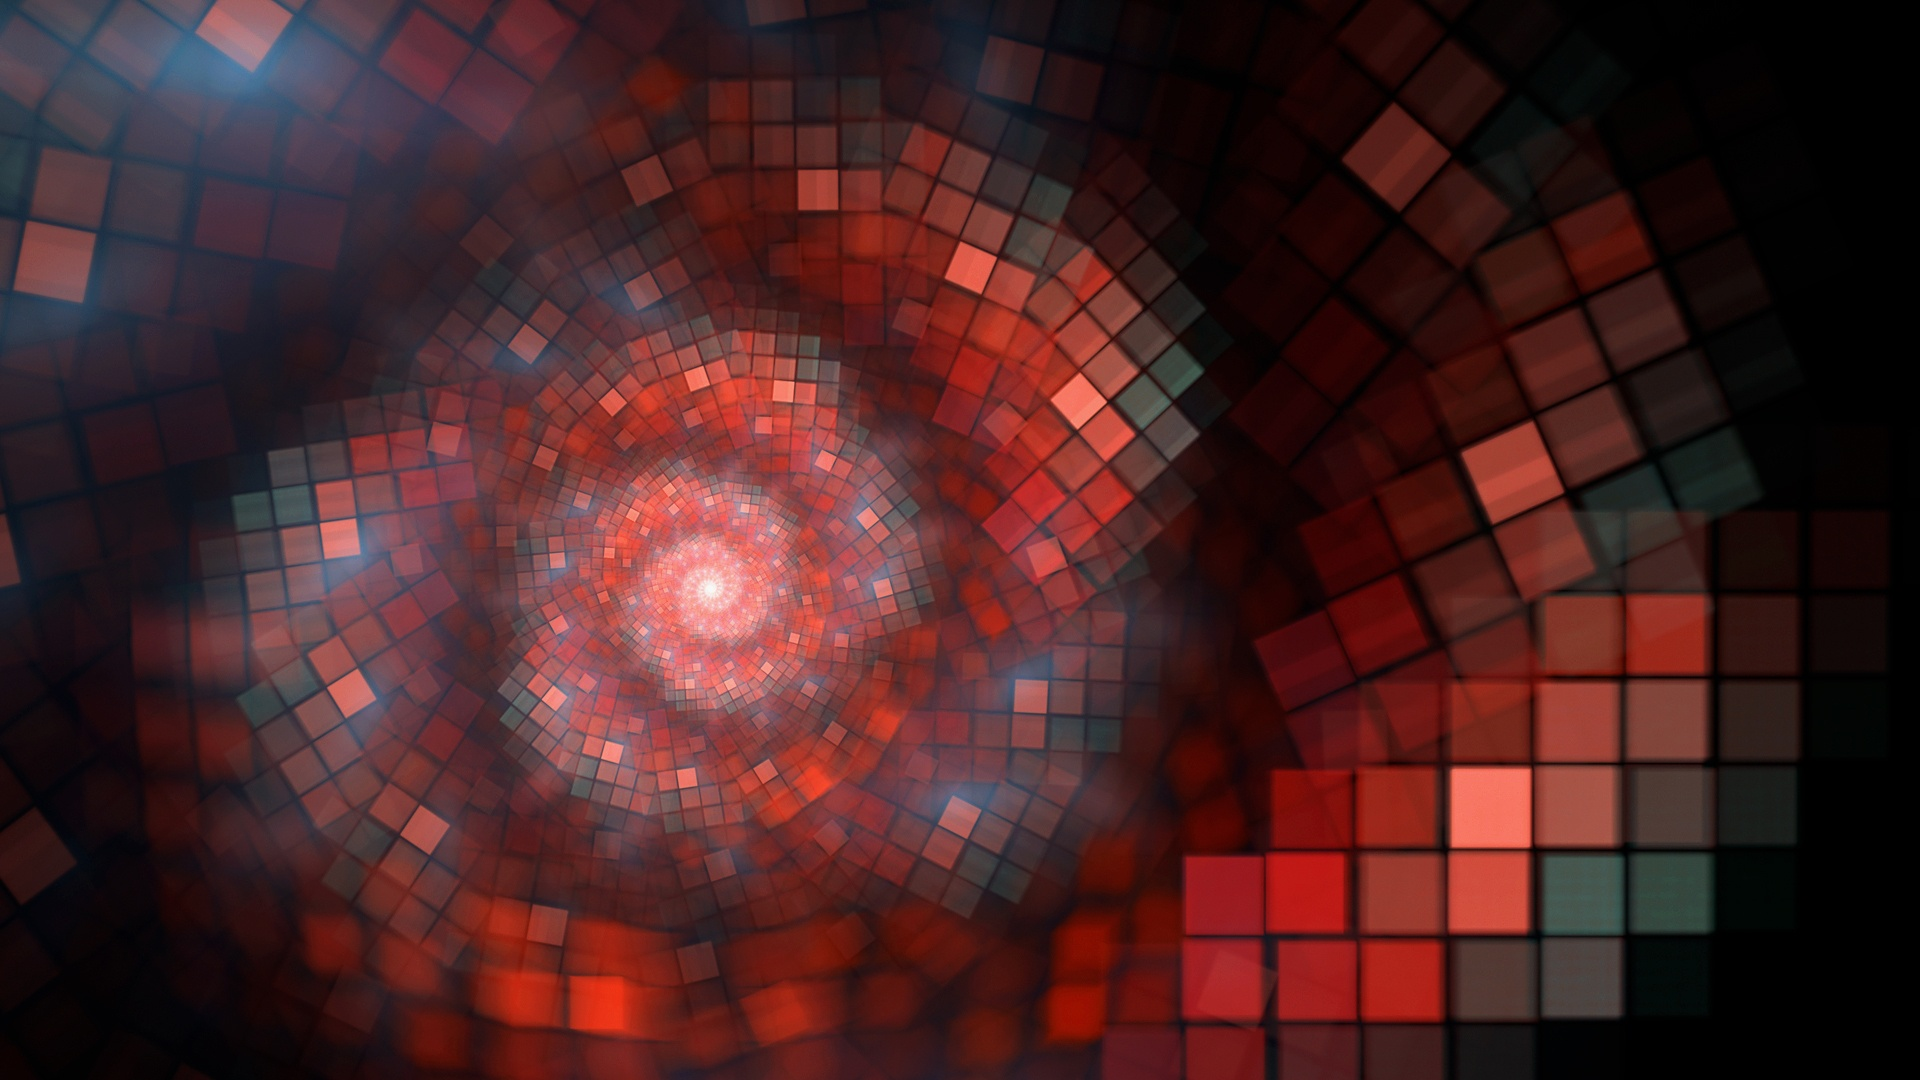 Dream channel red colors shape abstraction wallpaper - Dreaming about the color red ...